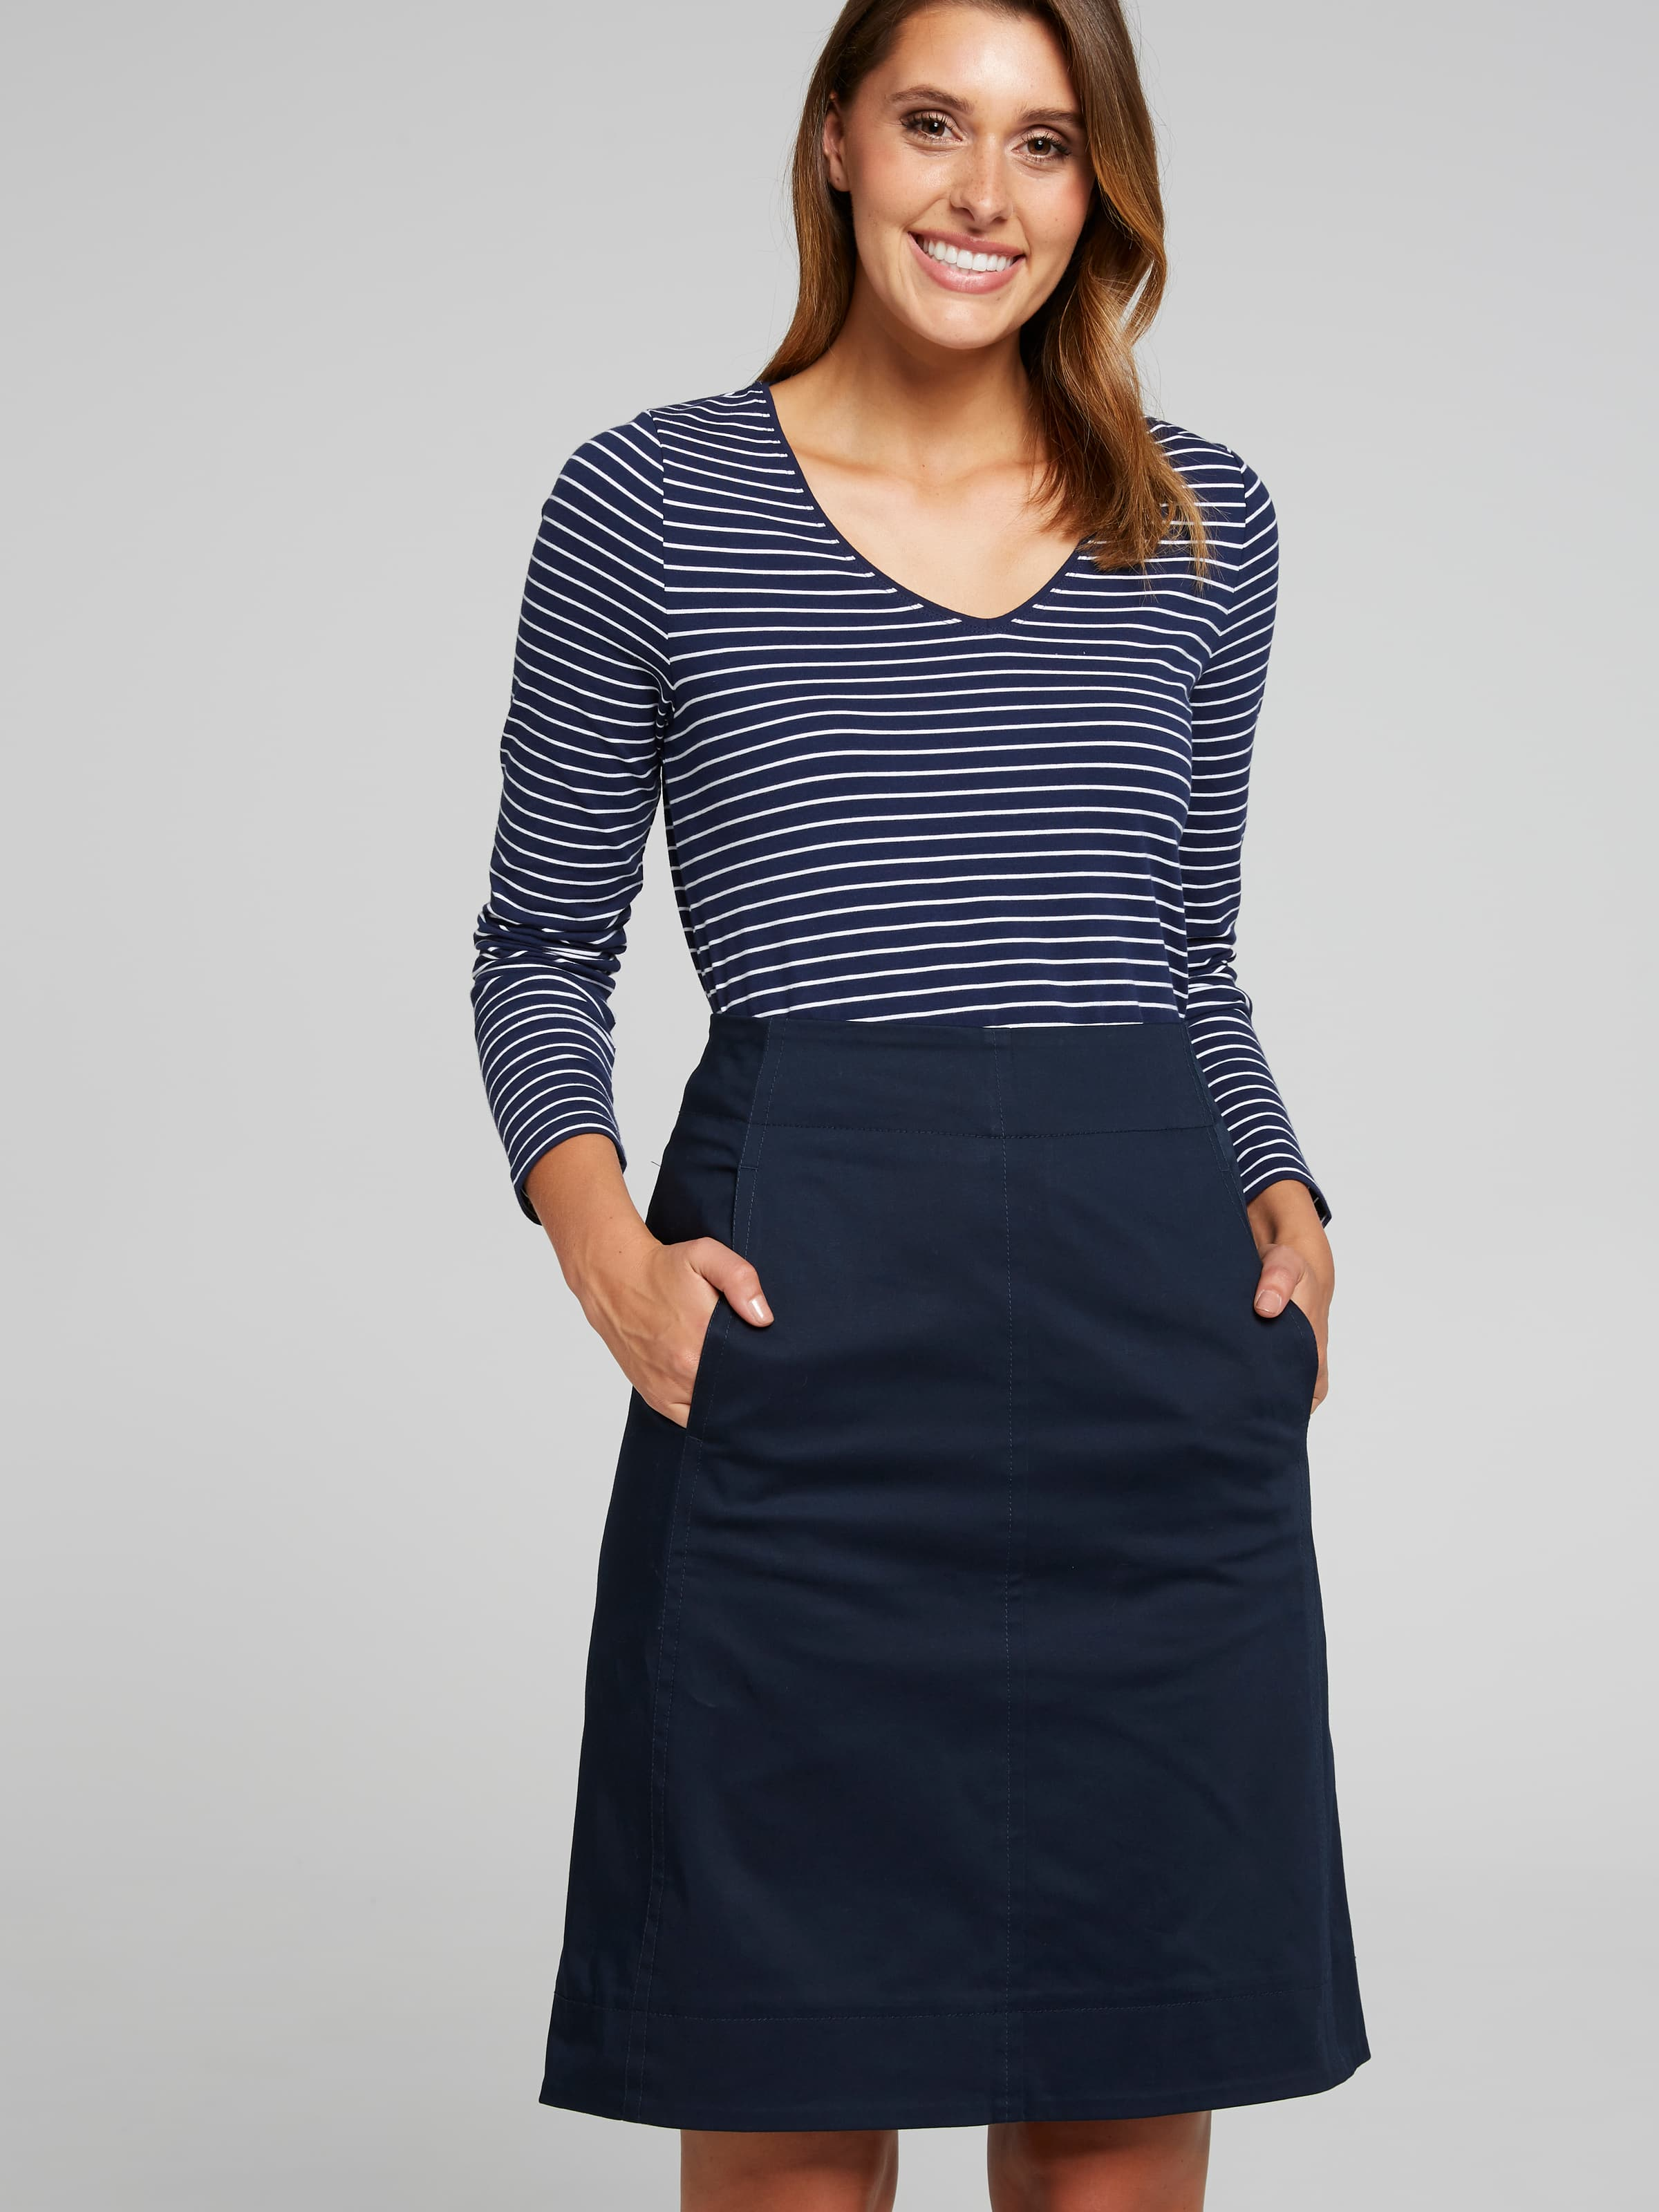 Finish off your weekend look with our Farrah Gored A-Line Midi Skirt. Featuring a-line midi length, all-over beautiful Cotton/Lycra fabrication for comfort and a flattering fit, to suit every body-shape.(Italian Navy, 14)